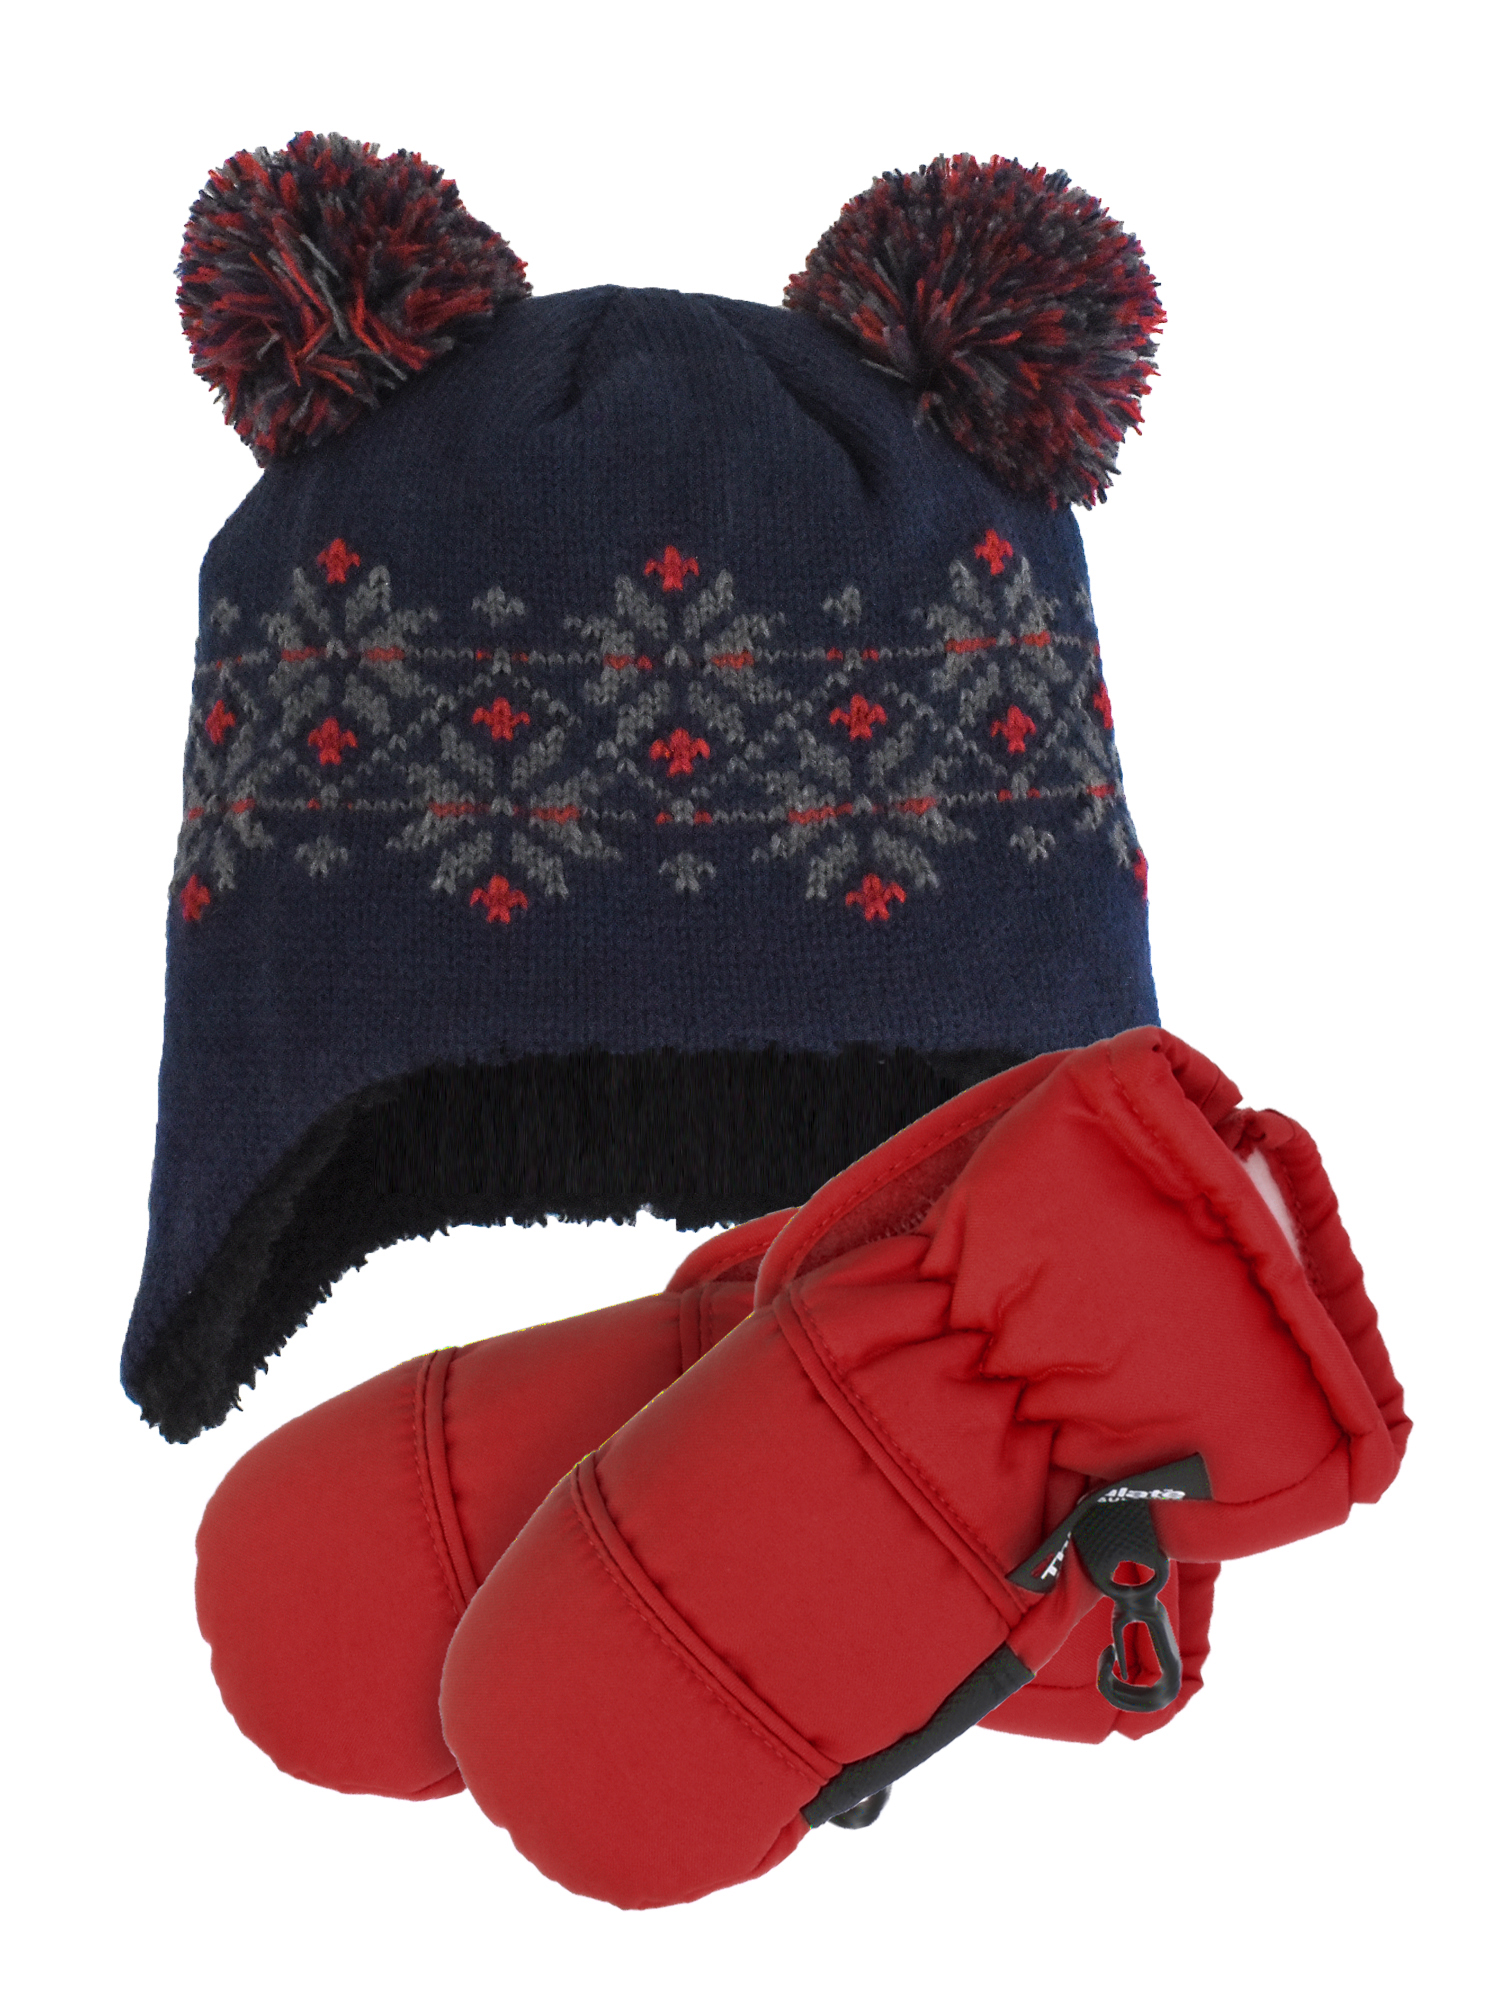 Cold Front Infant Double Pom Fair Isle Helmet and Infant Sports Mitten (0-24 Months)